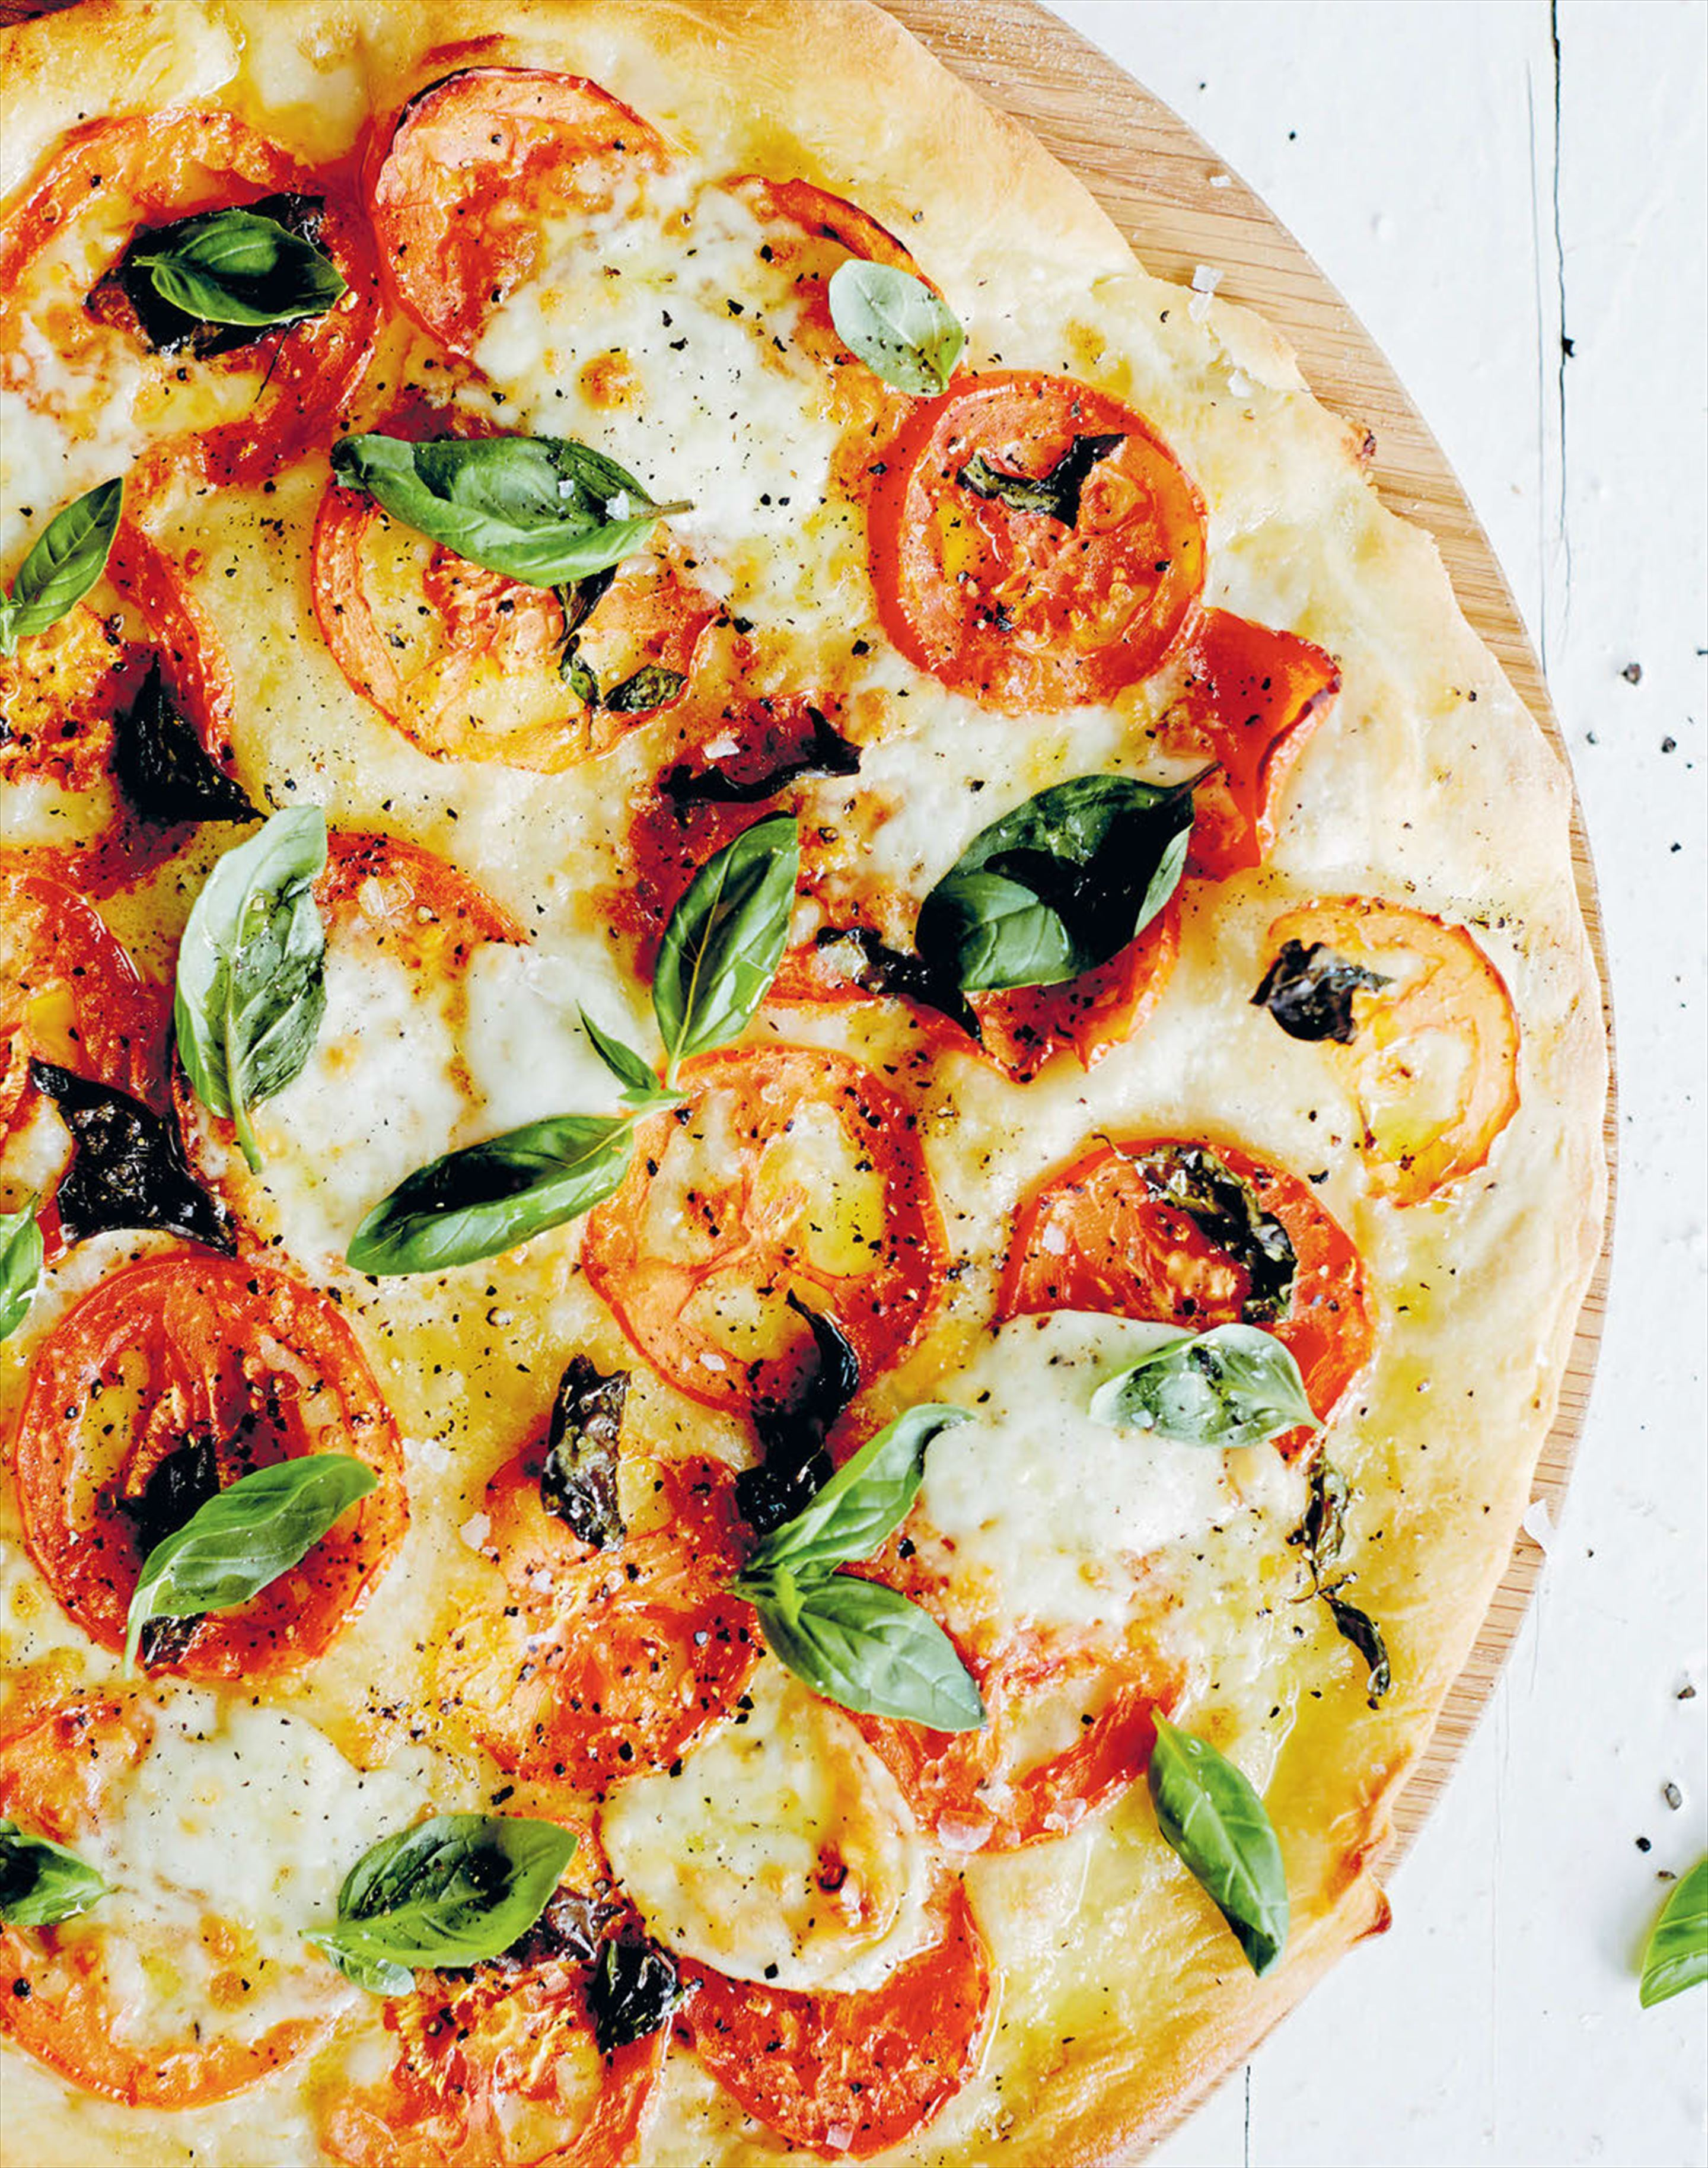 Tomato, buffalo mozzarella and basil pizza